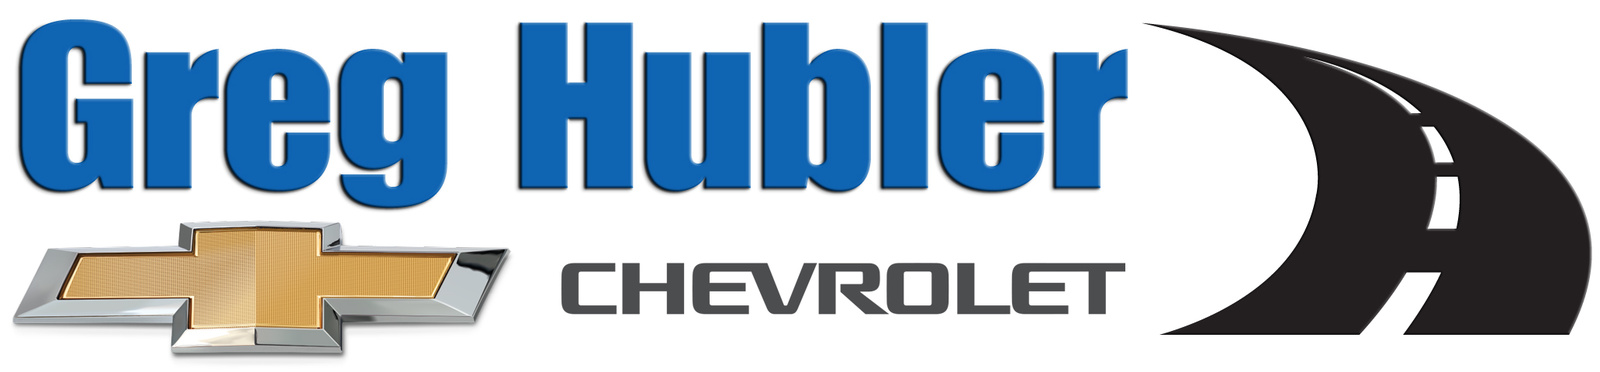 Hubler Nissan New Used Vehicles For Sale Service | Autos Post